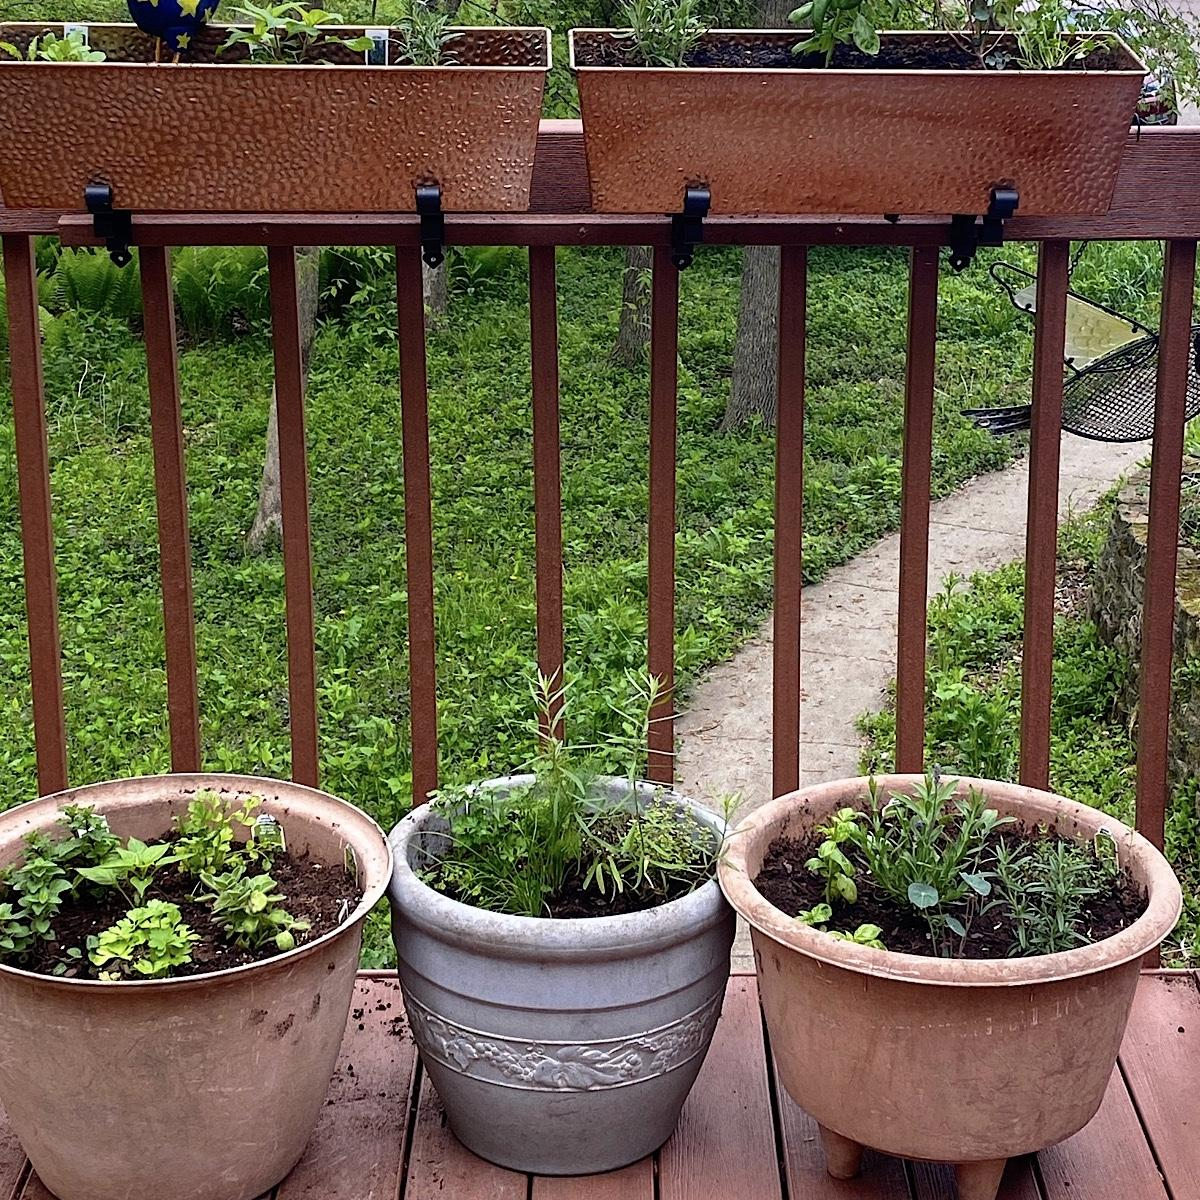 3 herb gardens in pots: Mediterranean, Seafood and Mexican